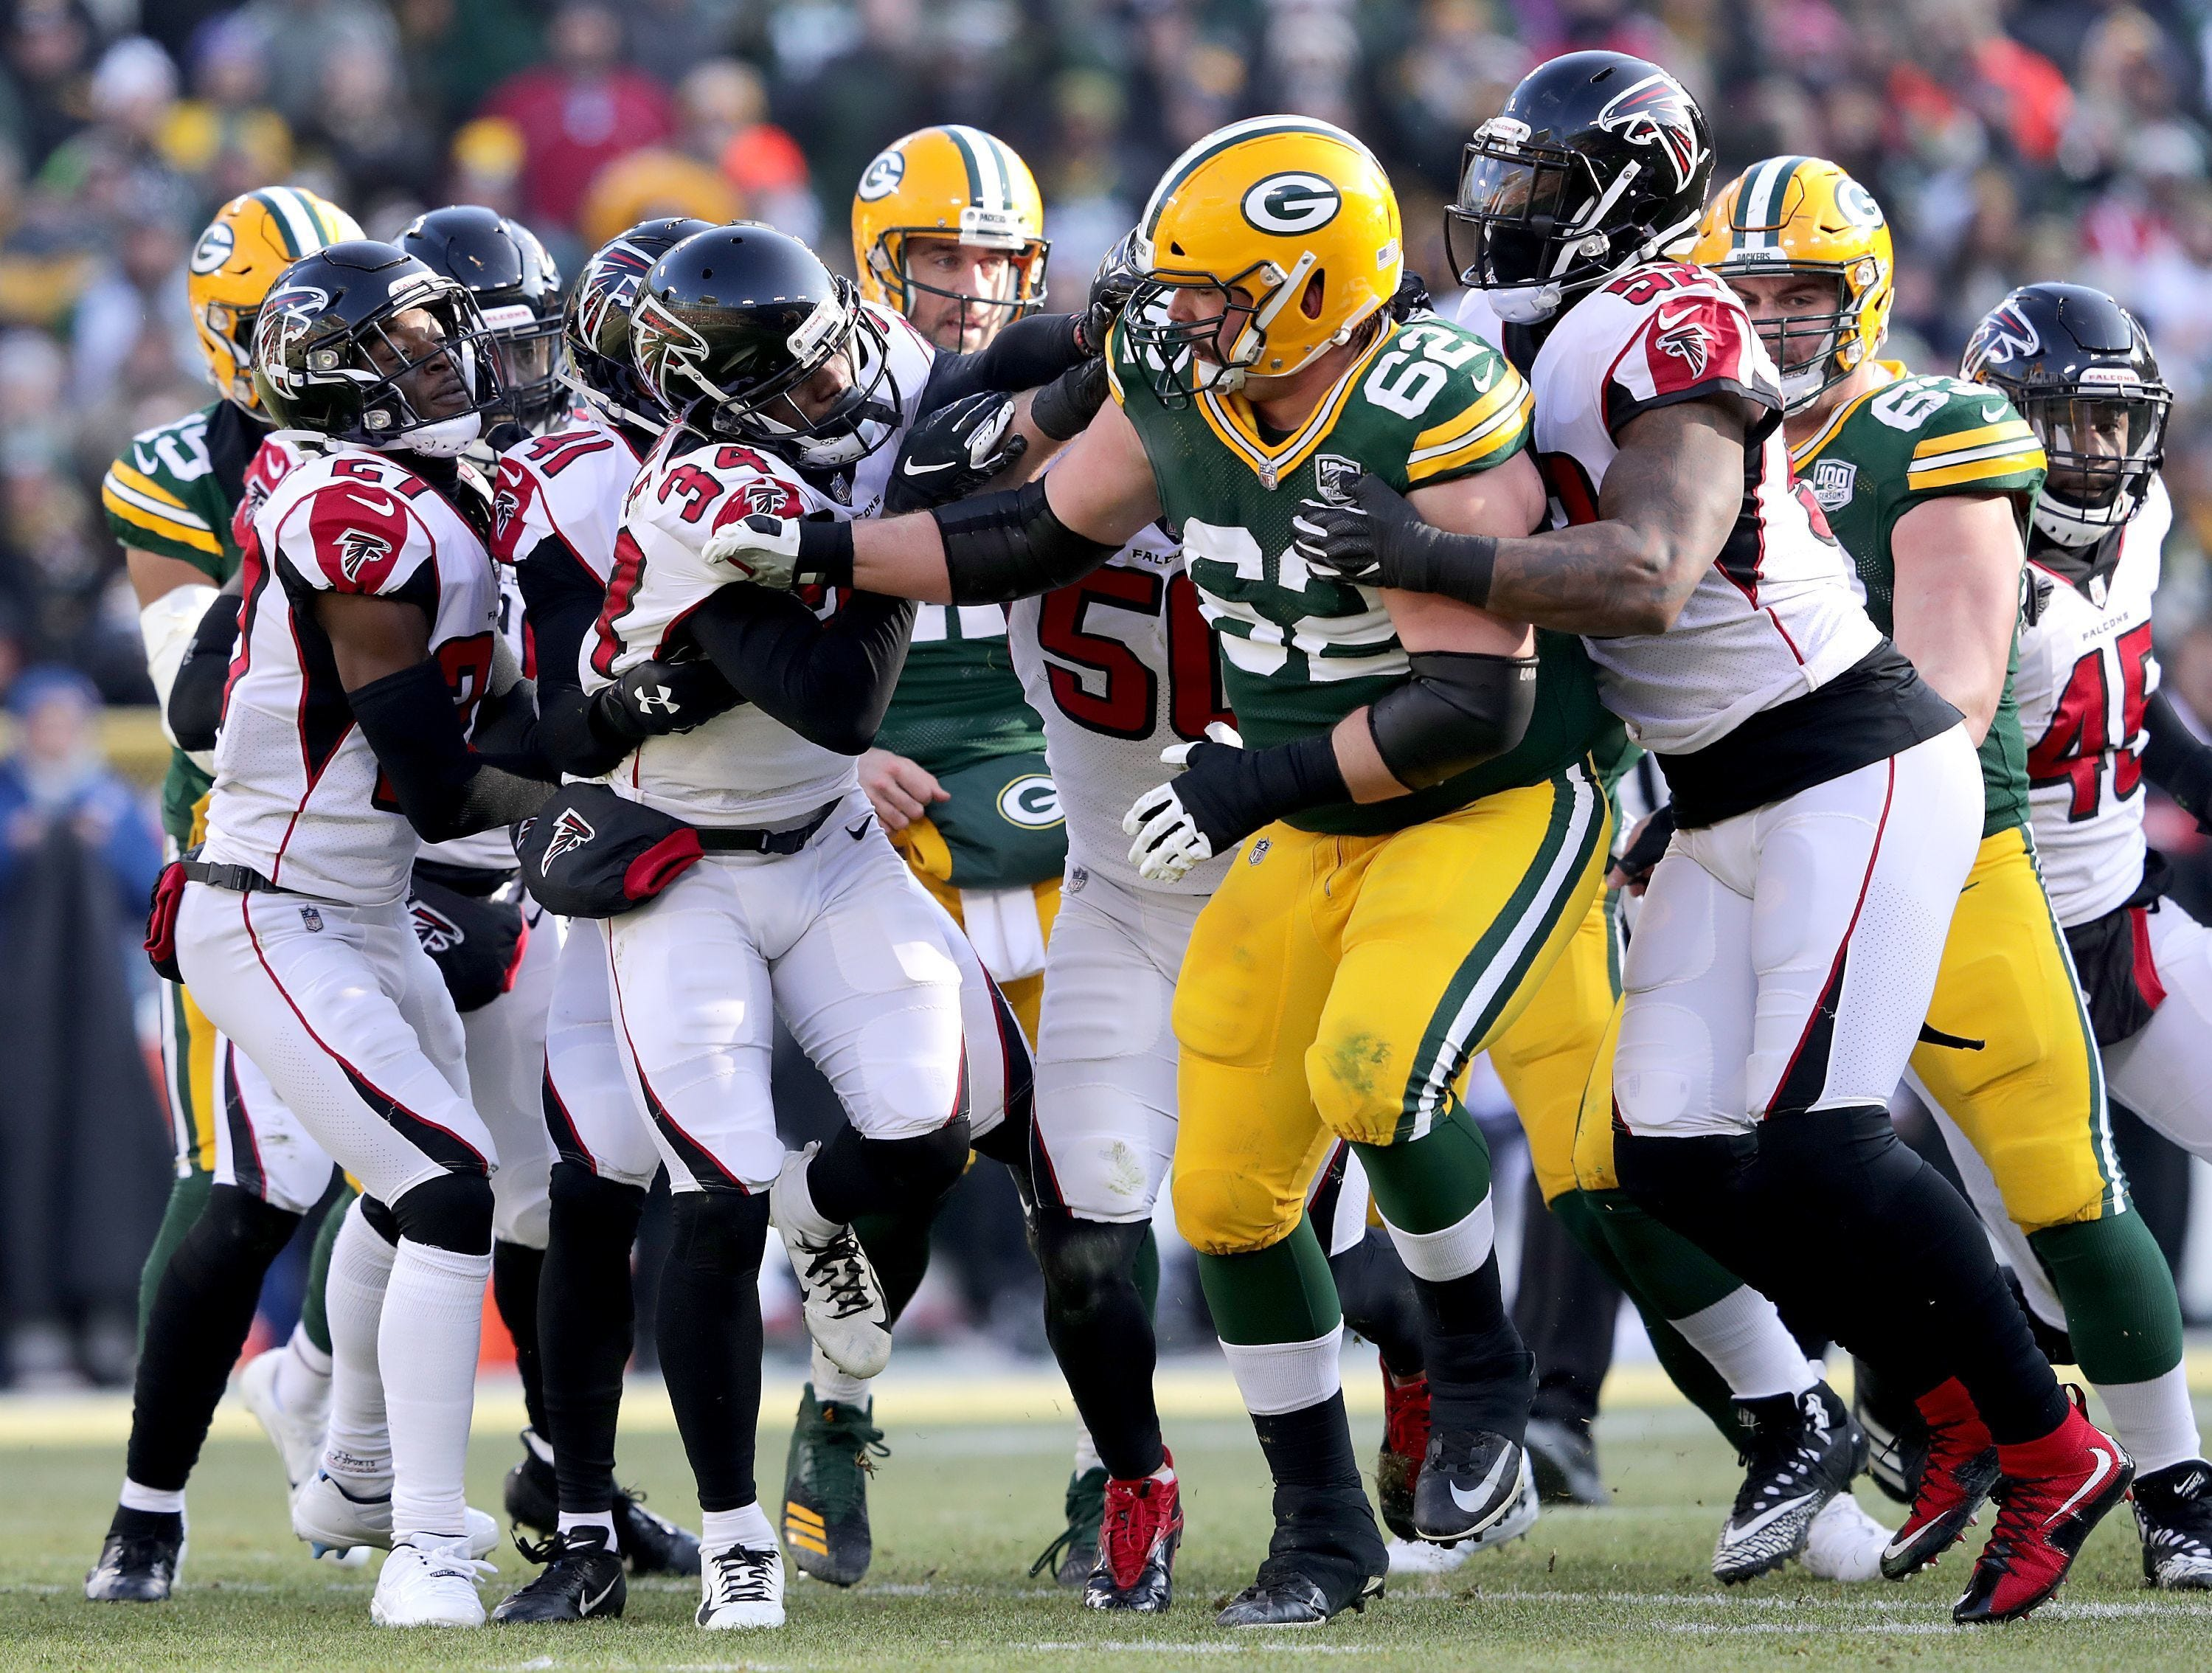 A scuffle after Atlanta Falcons cornerback Brian Poole tackled Green Bay Packers quarterback Aaron Rodgers in the second quarter of the Green Bay Packers against the Atlanta Falcons during their football game on Sunday, December 9, 2018, at Lambeau Field in Green Bay, Wis.